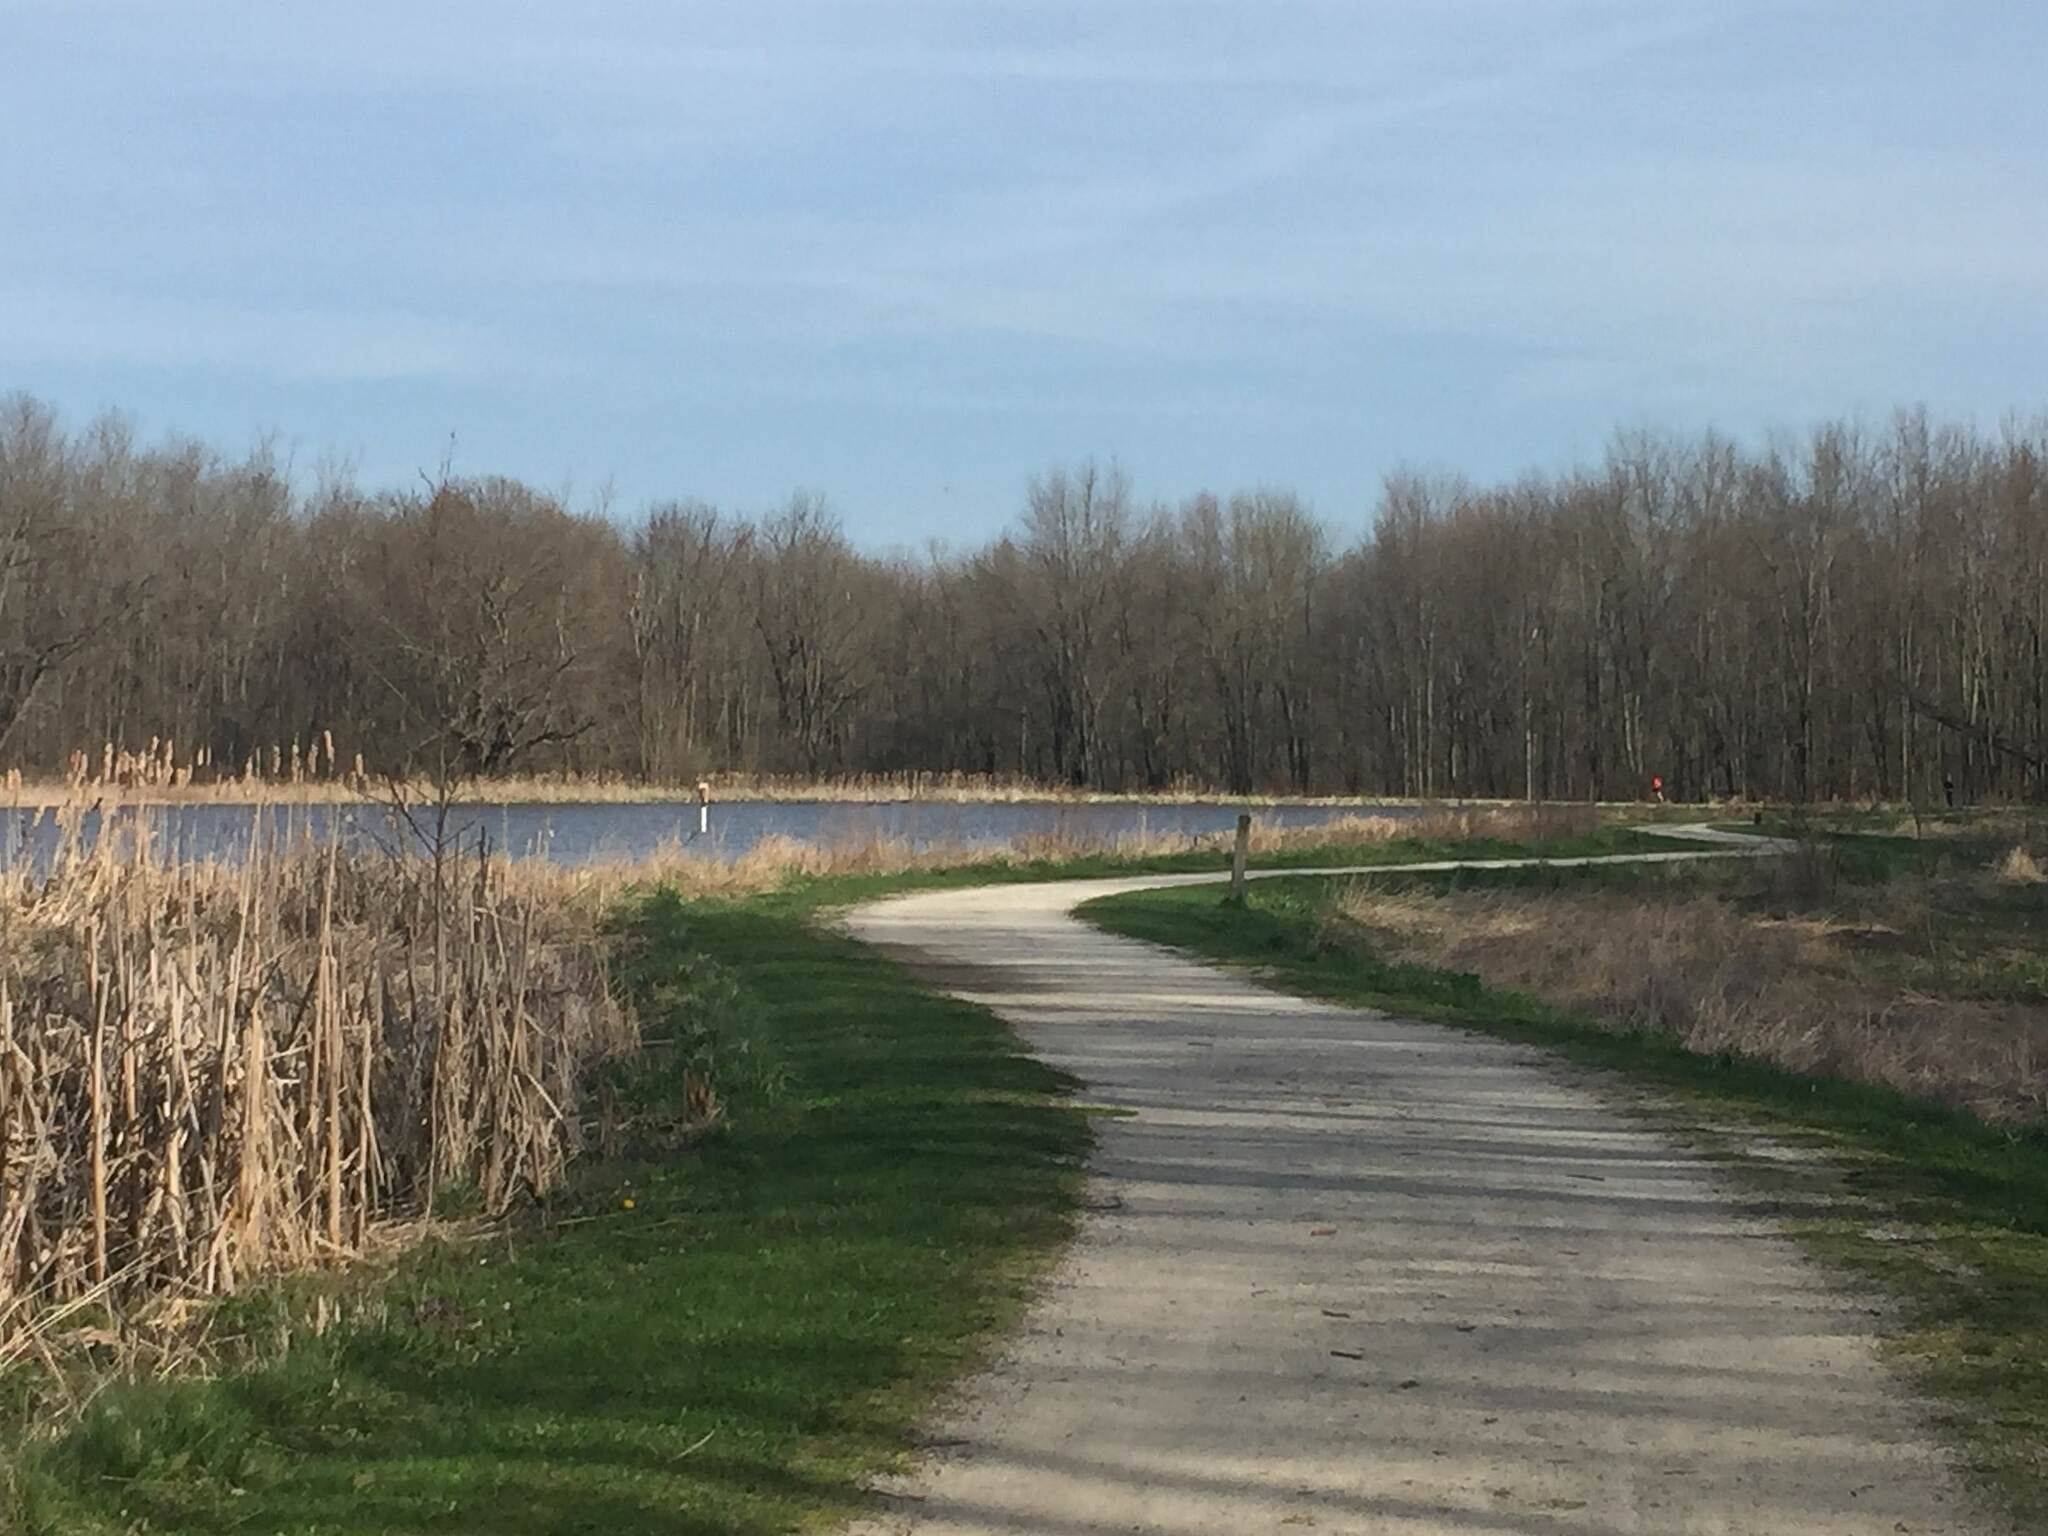 Chippewa Inlet Trail Lakeside Trail Loop in Buckeye Woods Park. The trail skirts a small lake in the northern most trail loop in Medina's Buckeye Woods Park.  April 12, 2017.